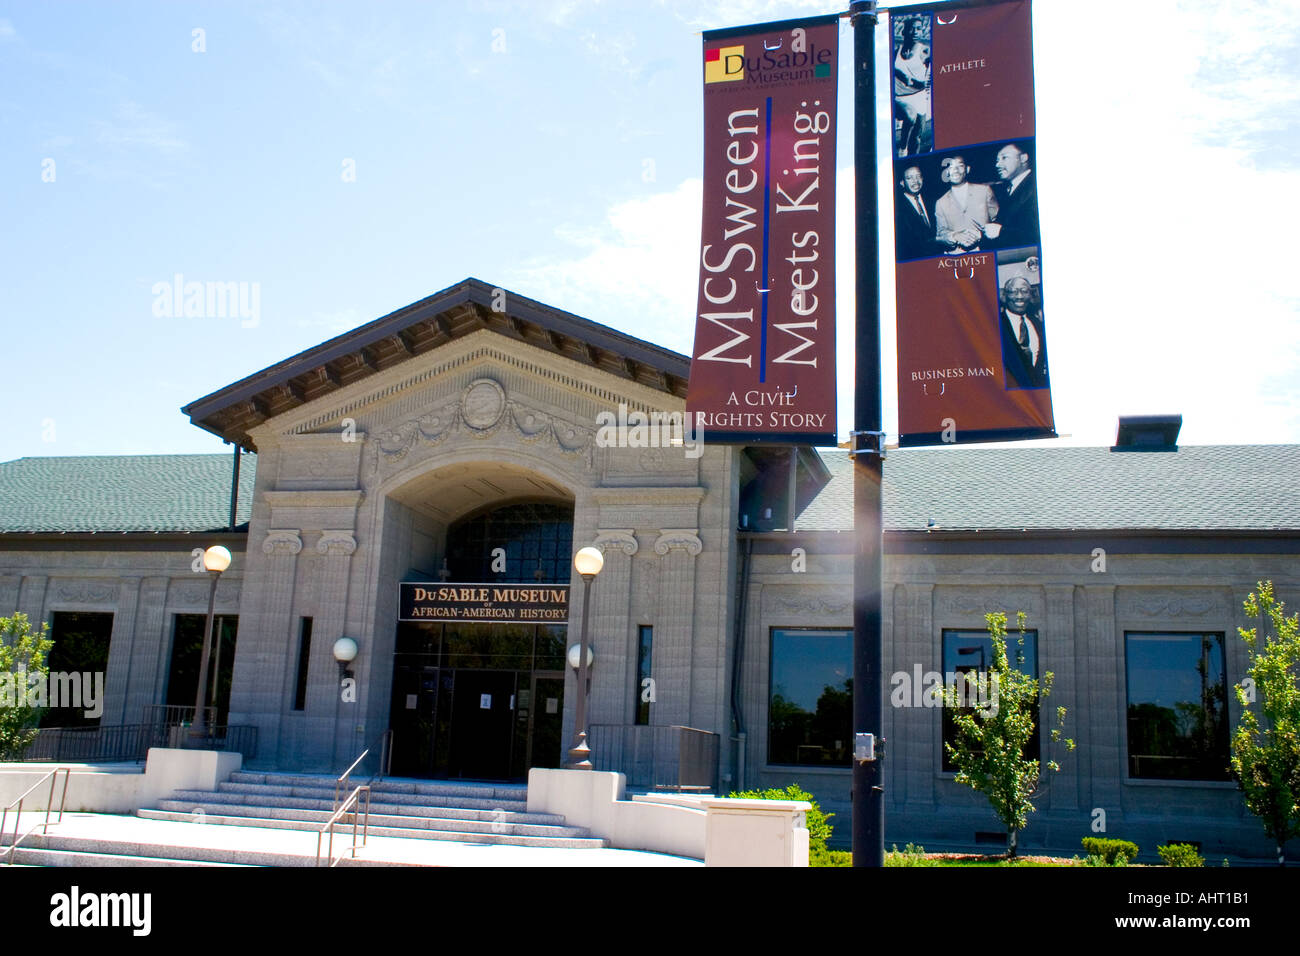 DuSable African American History Museum near University of Chicago. Chicago Illinois IL USA - Stock Image